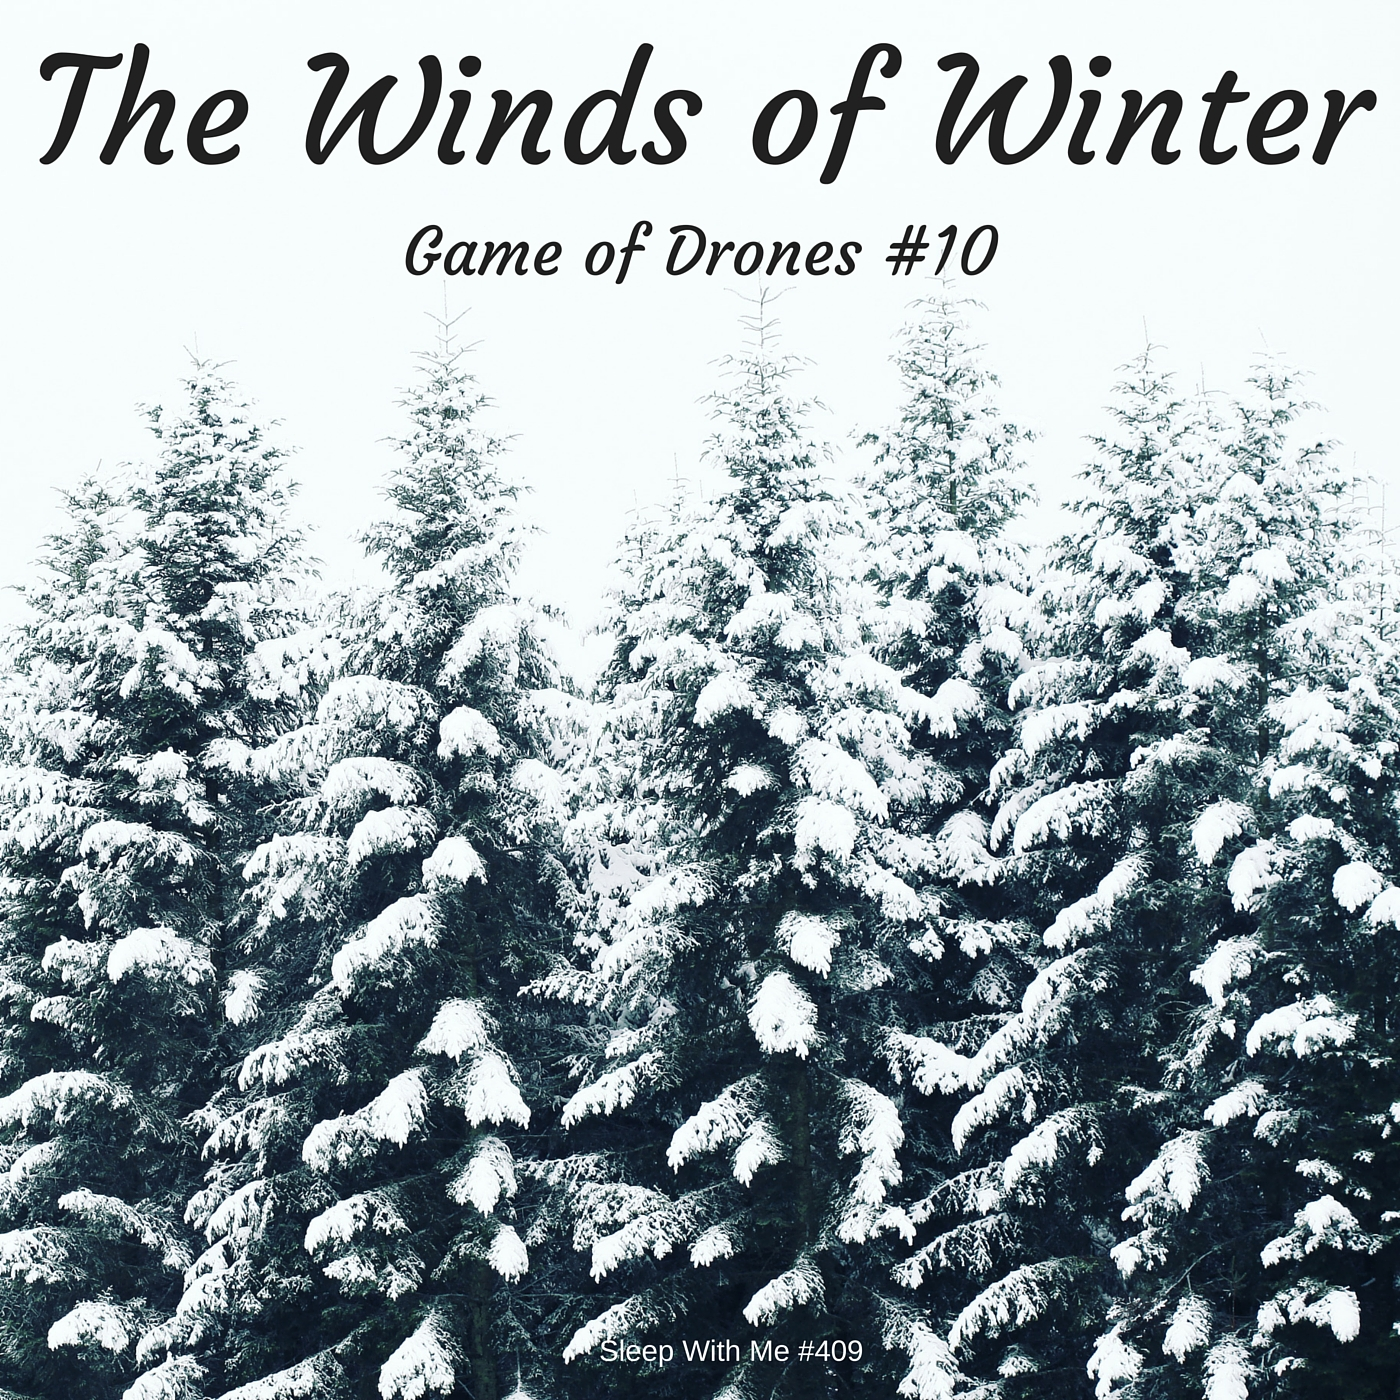 Winds of Winter | Game of Drones S6 E10 | Sleep With Me #409